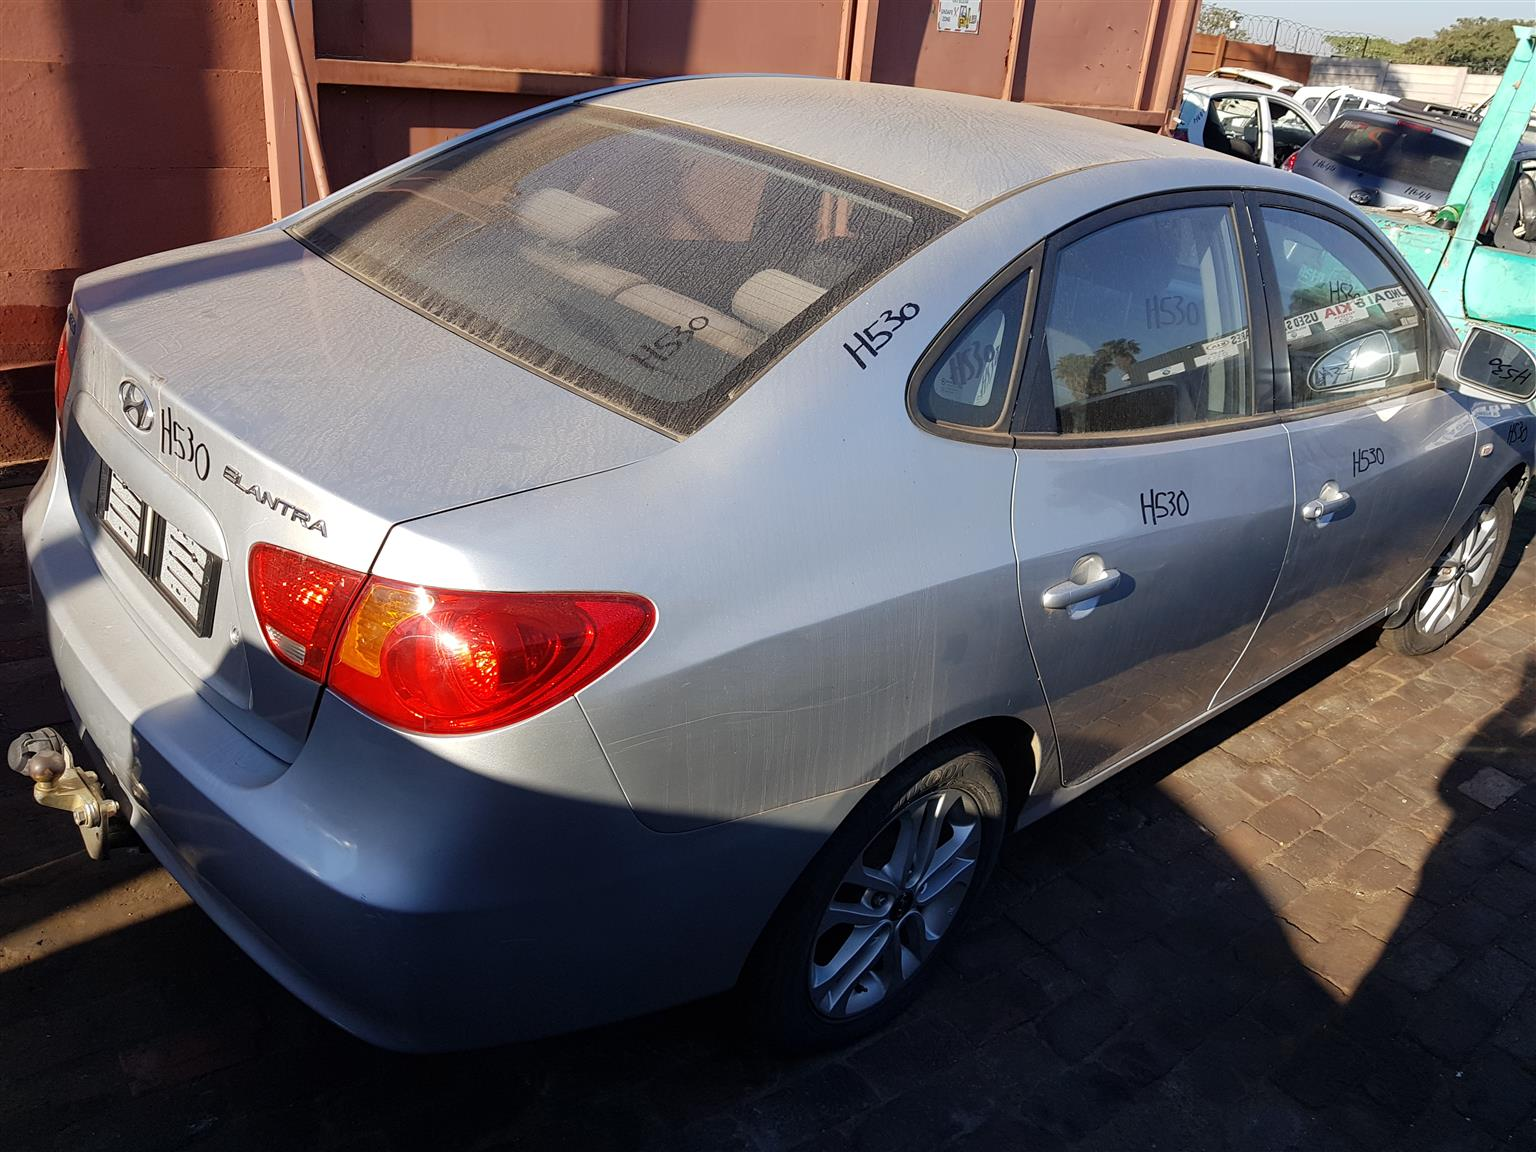 Elantra 1.6 automatic 2009 now for stripping of all parts.